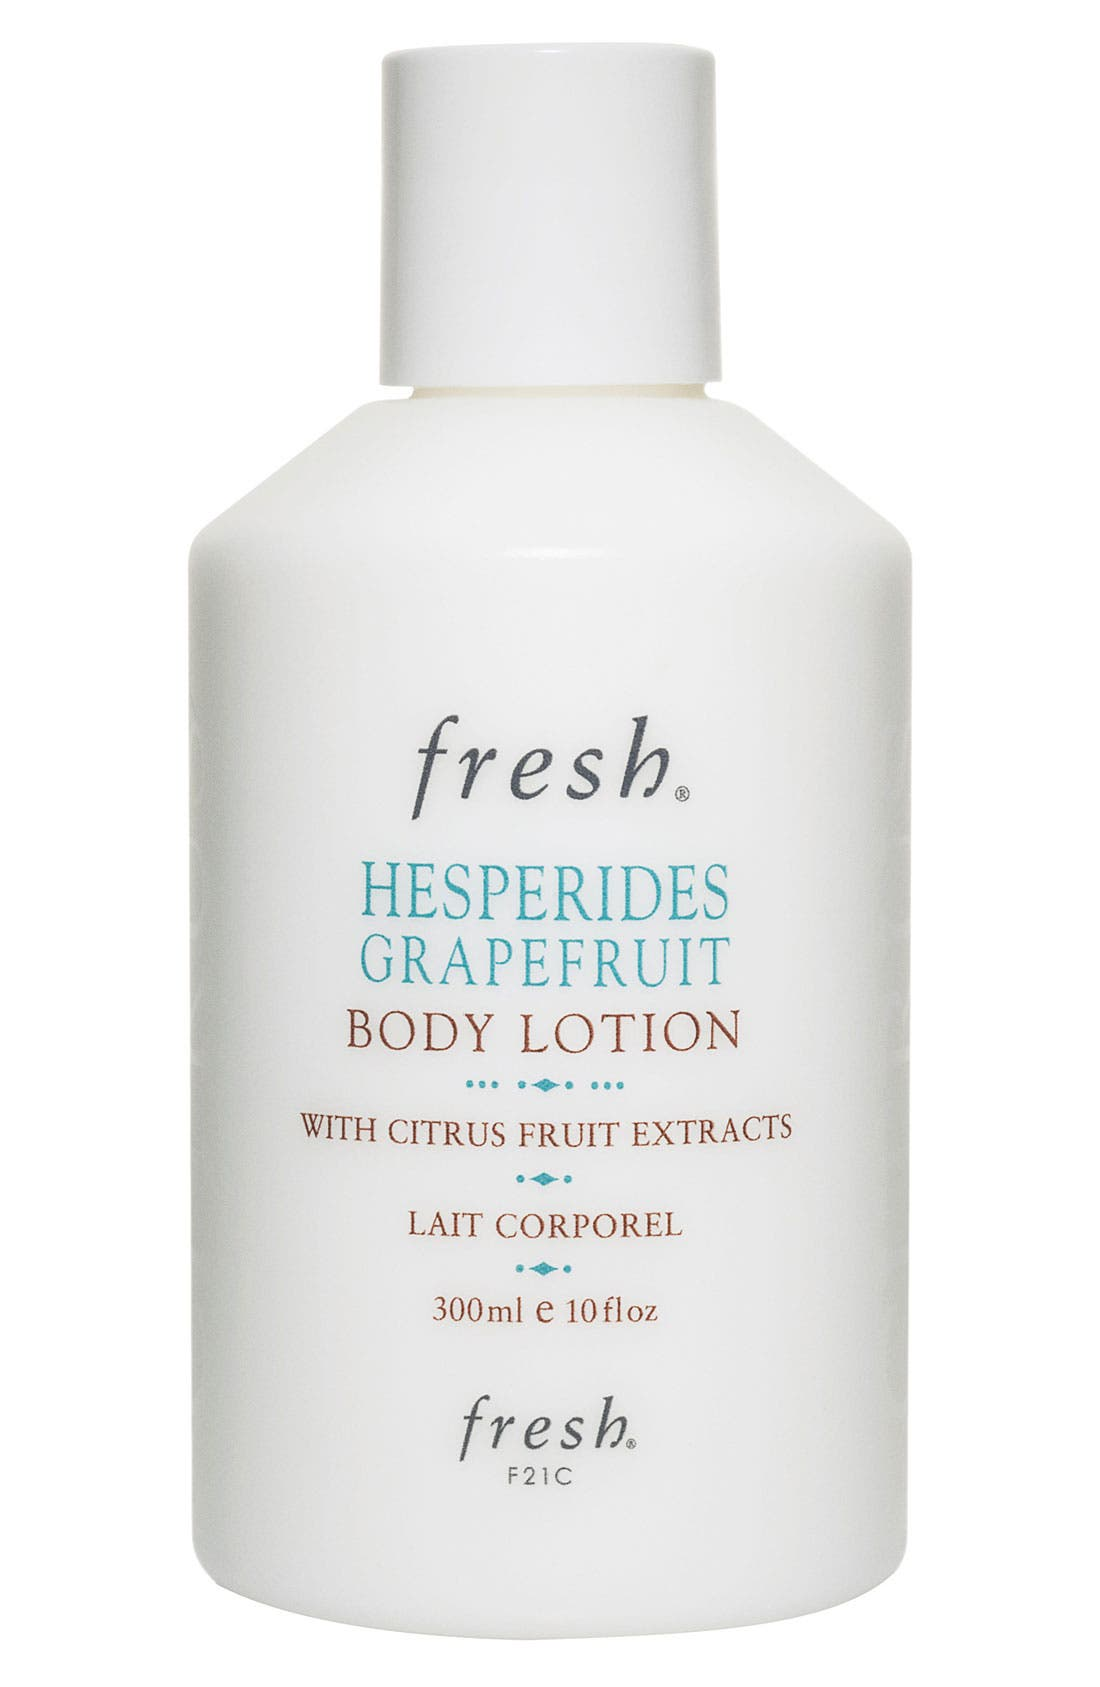 Fresh® 'Hesperides Grapefruit' Body Lotion